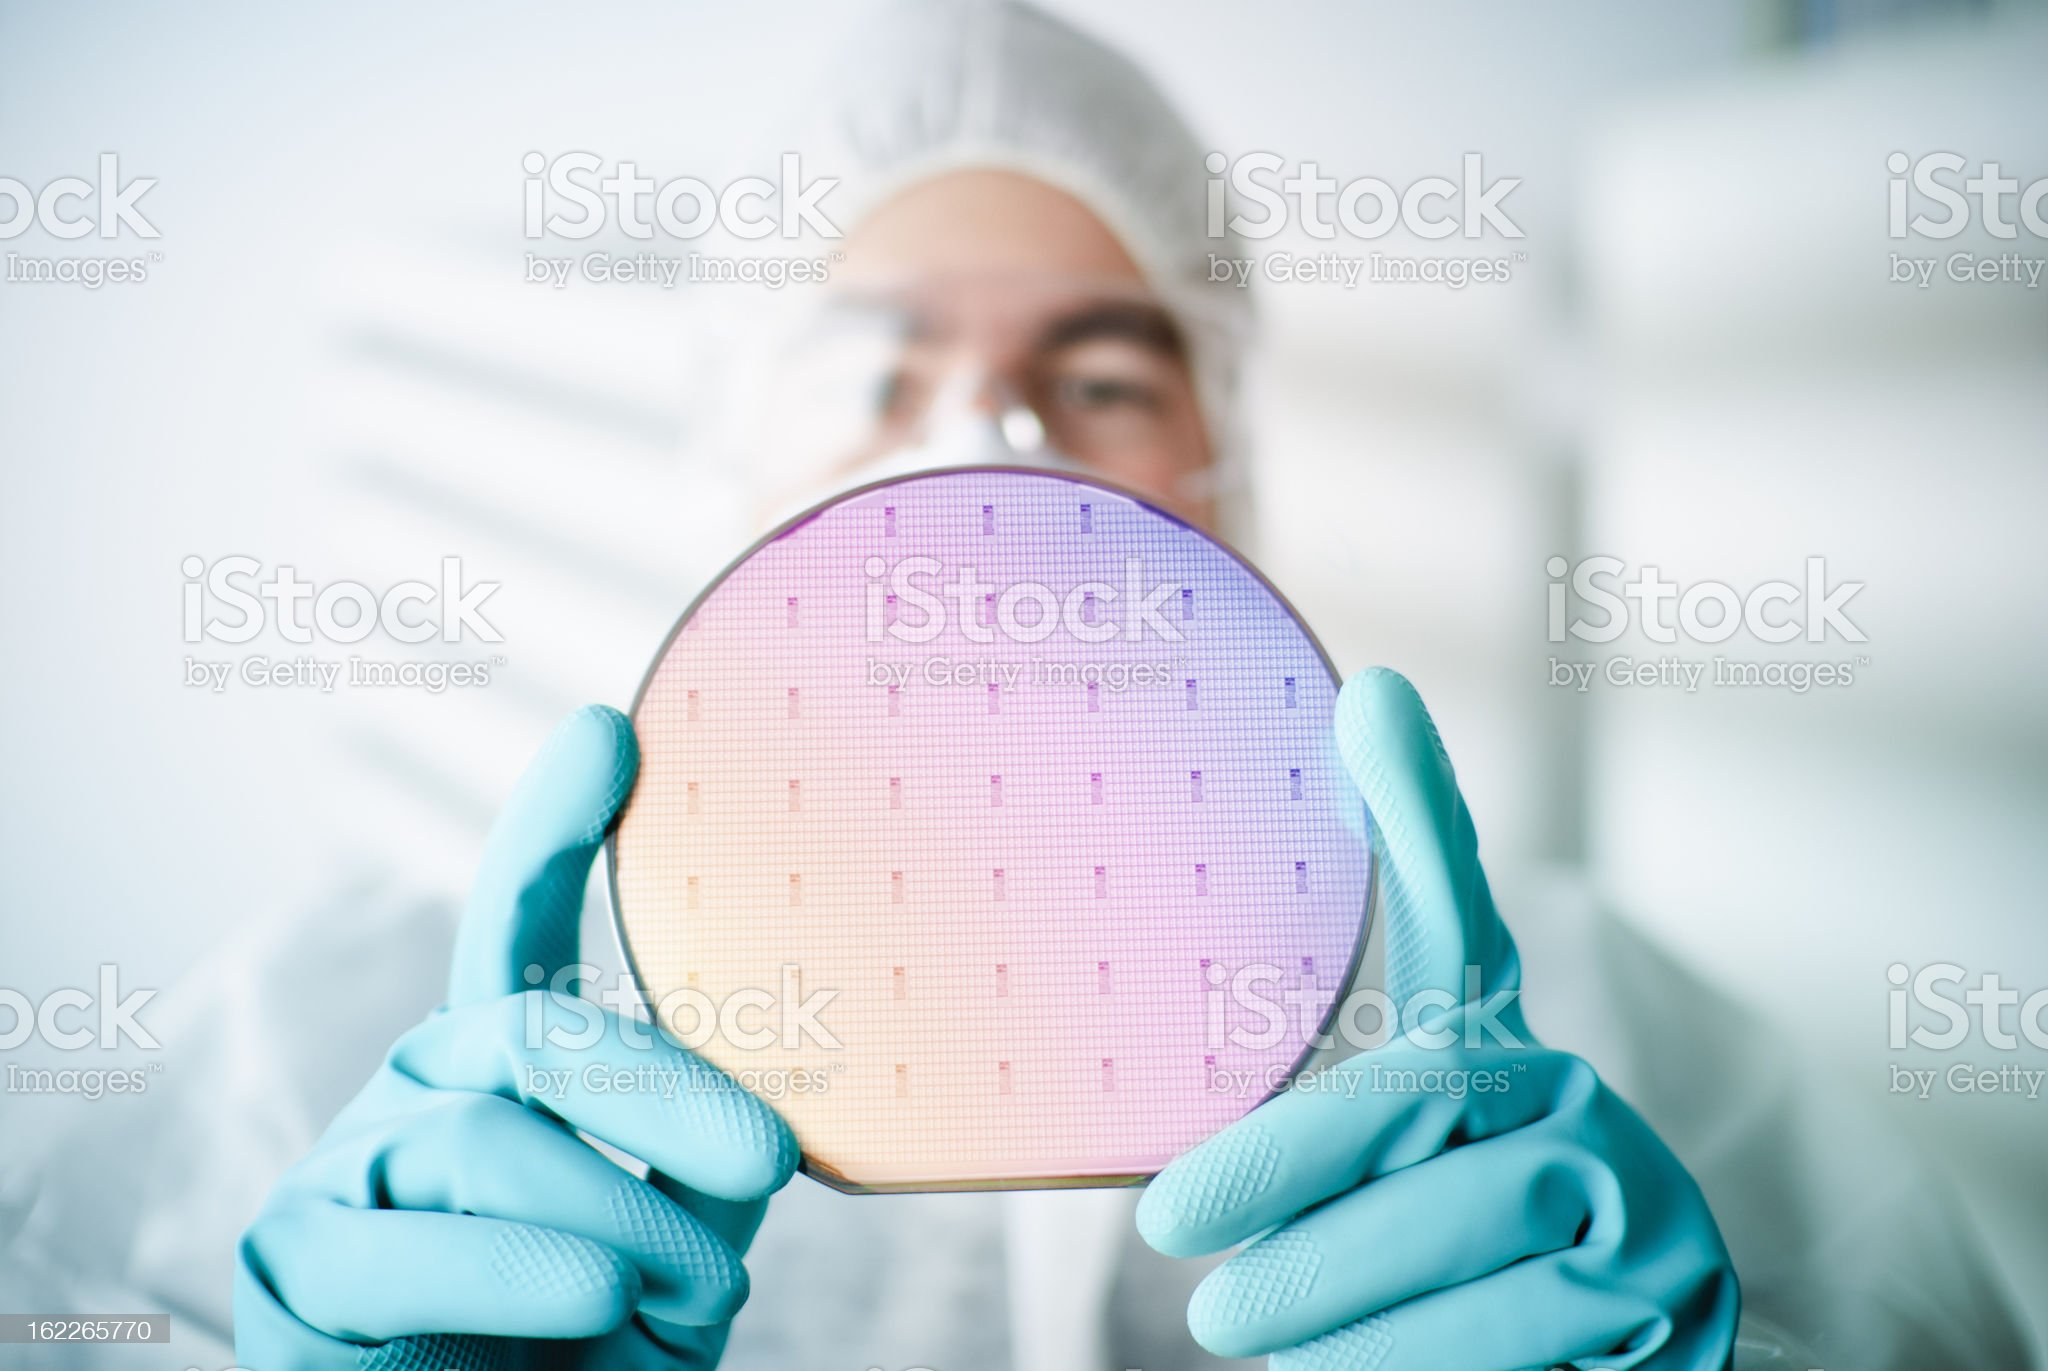 Silicon Wafer royalty-free stock photo